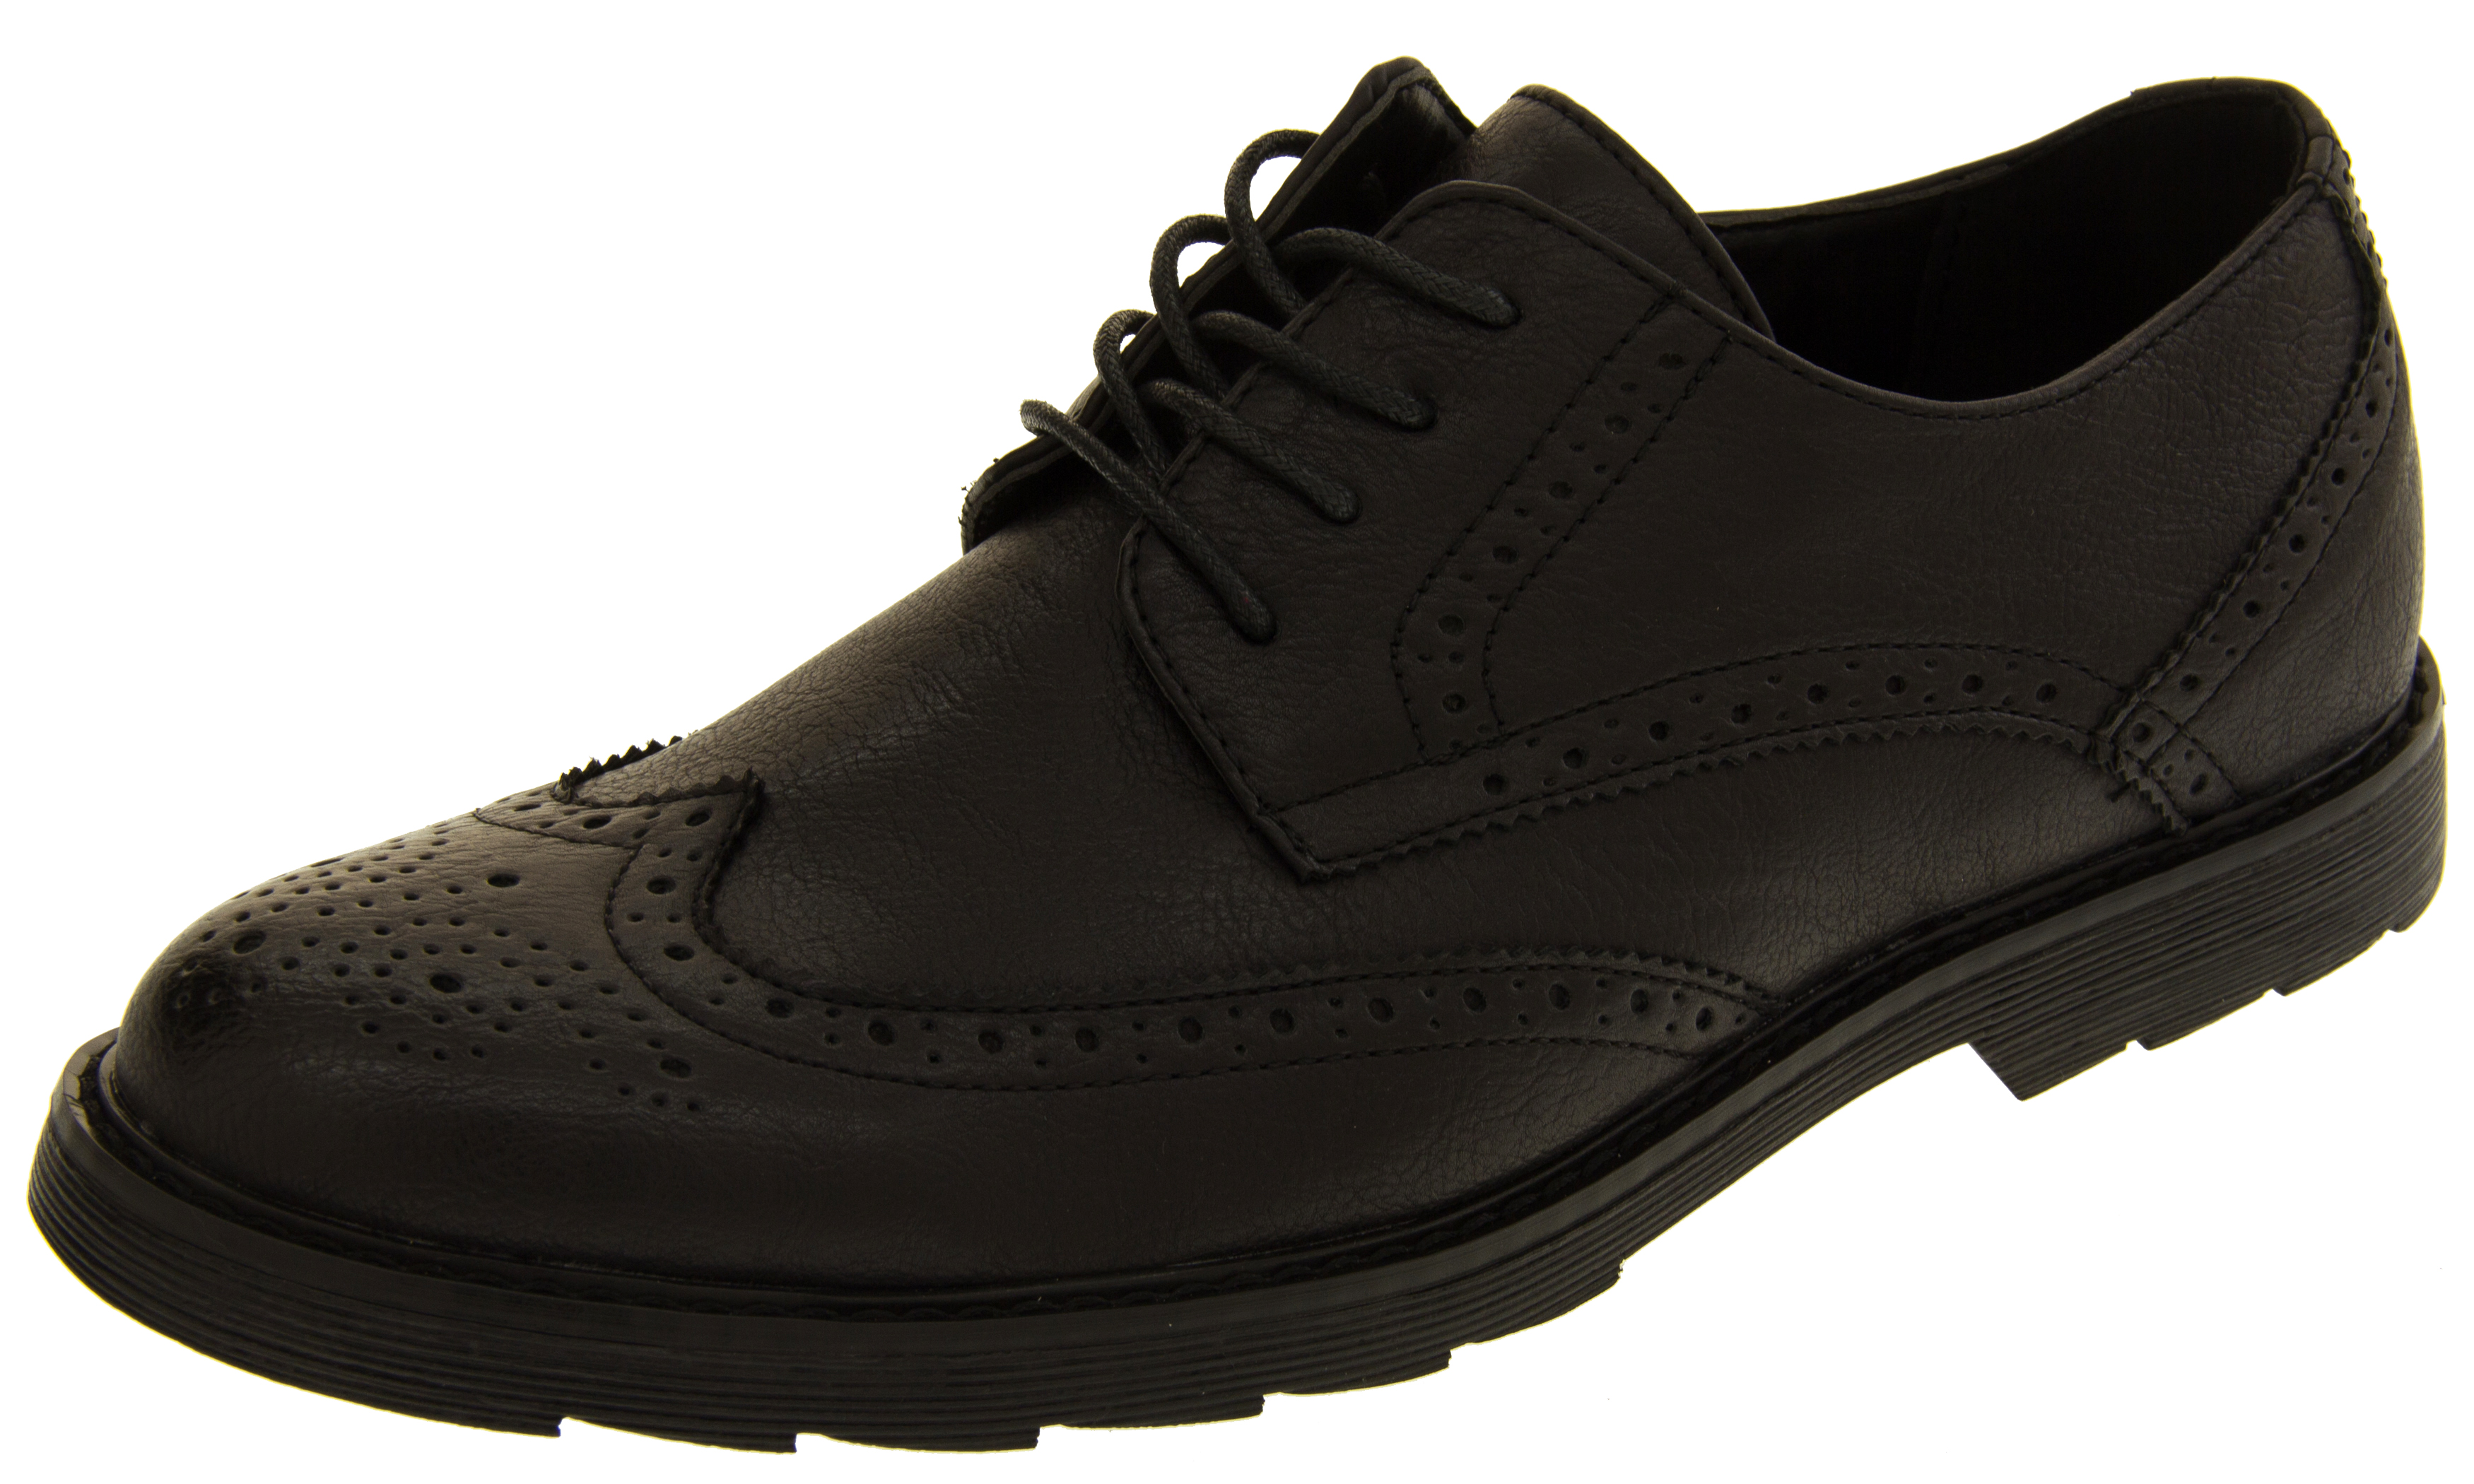 Mens Clics Faux Leather Brogues Formal Lace Up Office Shoes Smart School Shoe